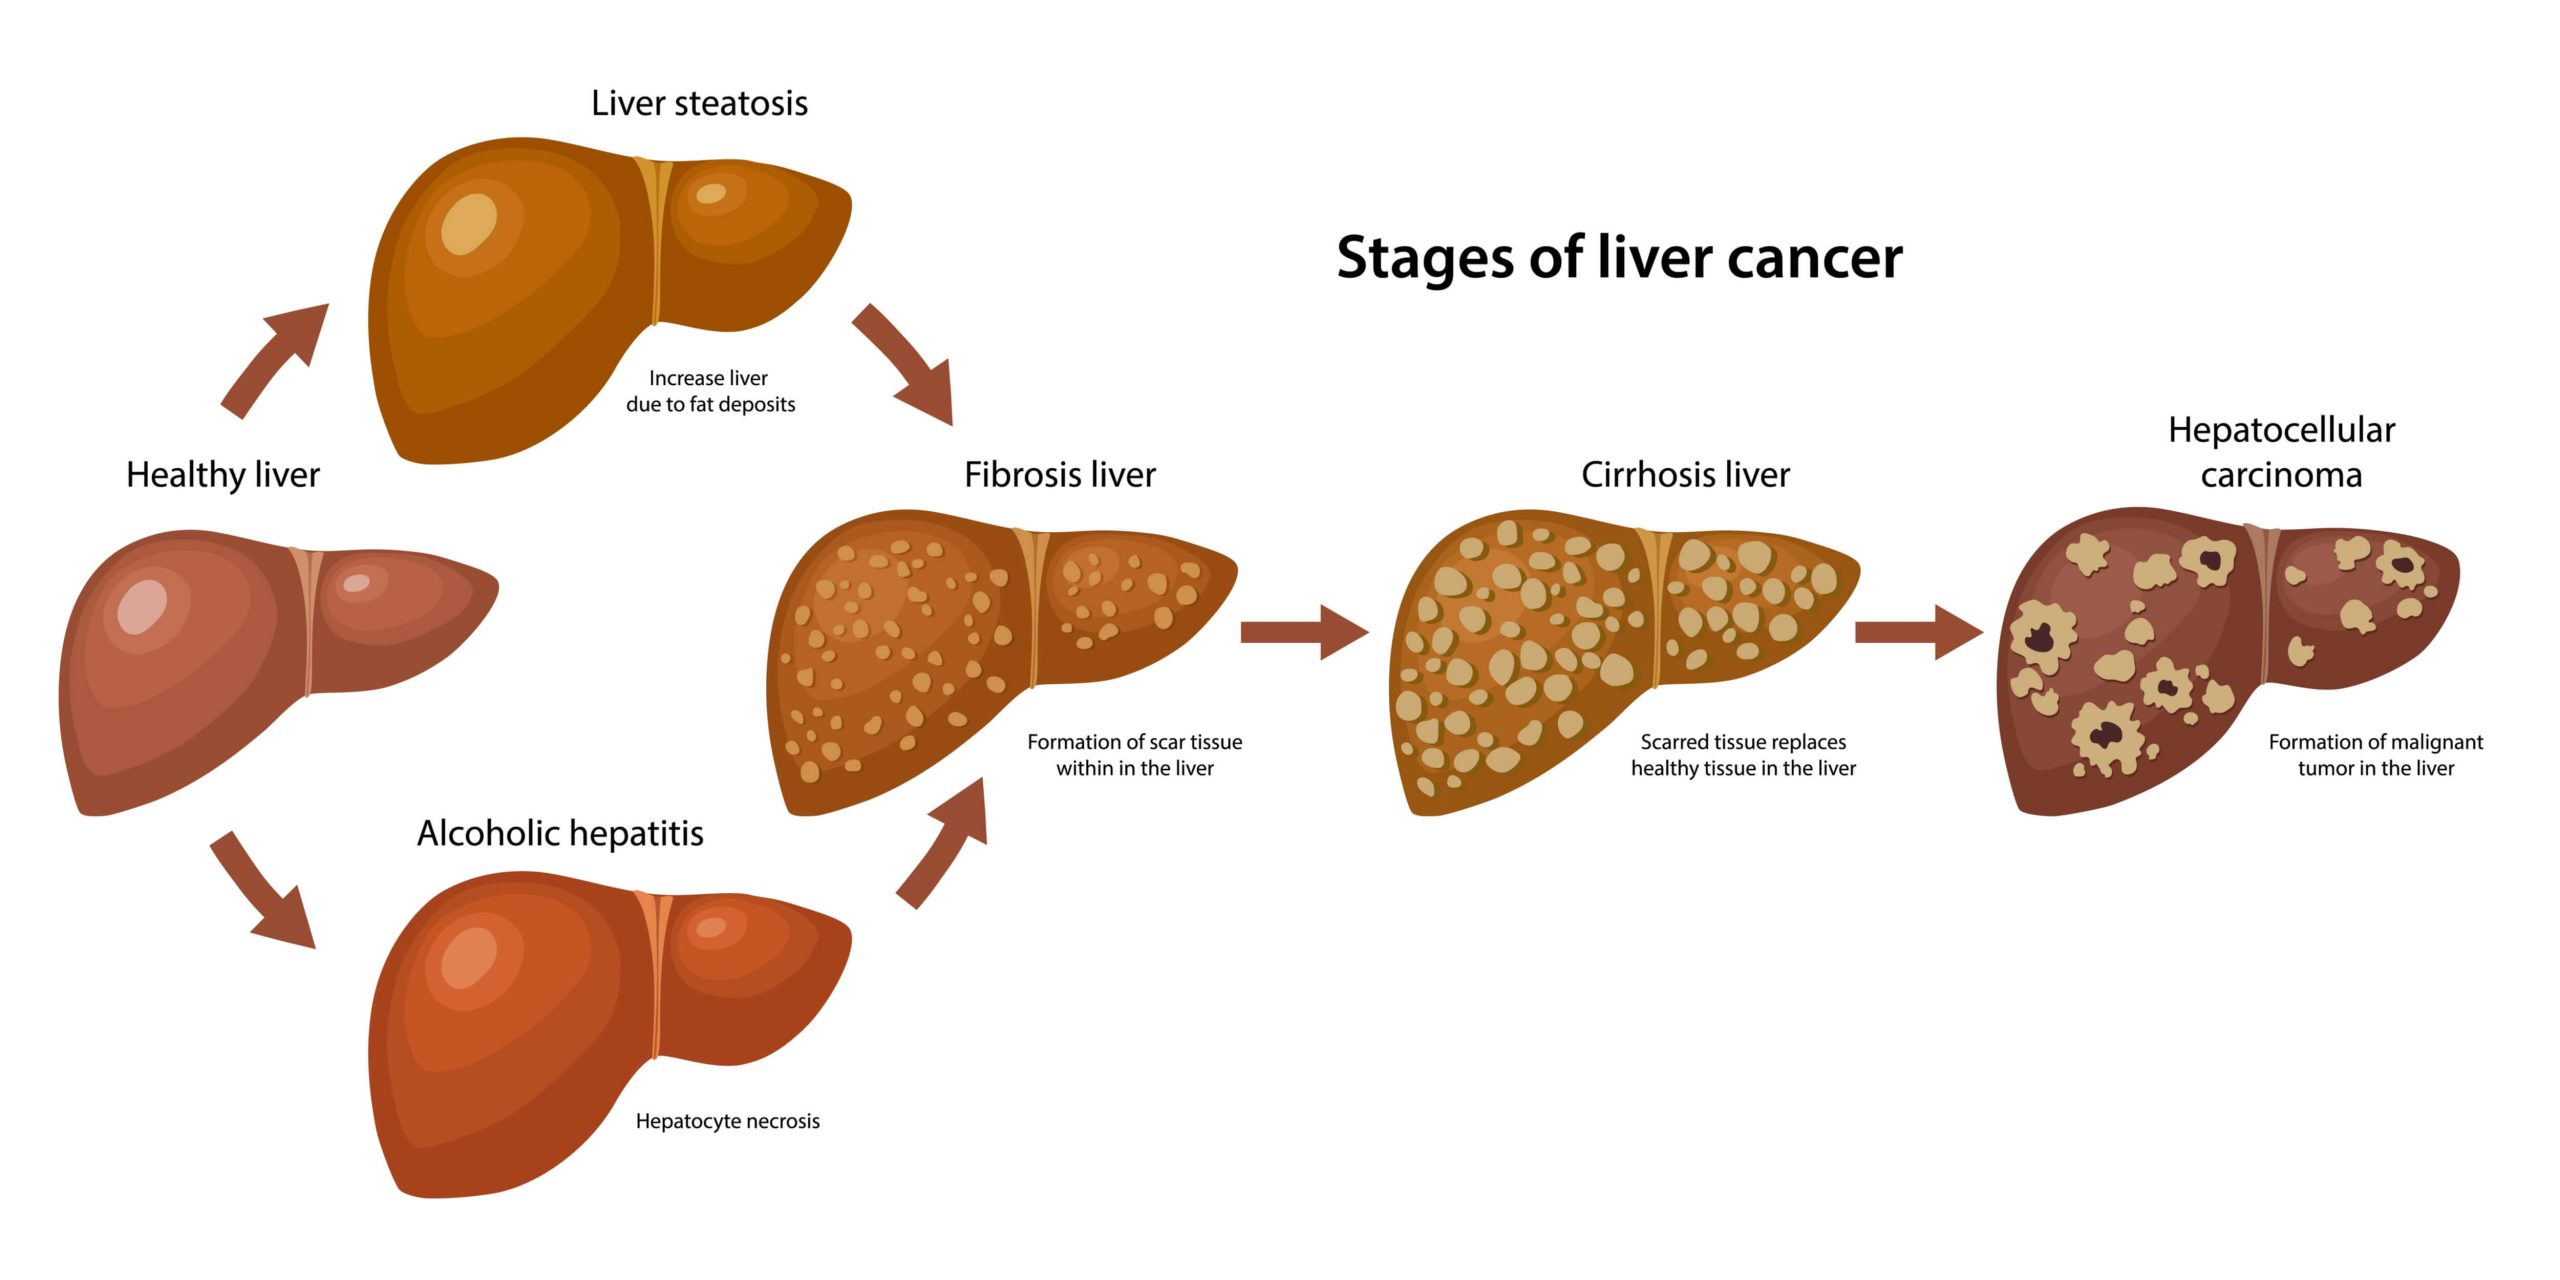 Cirrhosis (Cirrhosis of the Liver) – Causes And Symptoms of Liver Cirrhosis